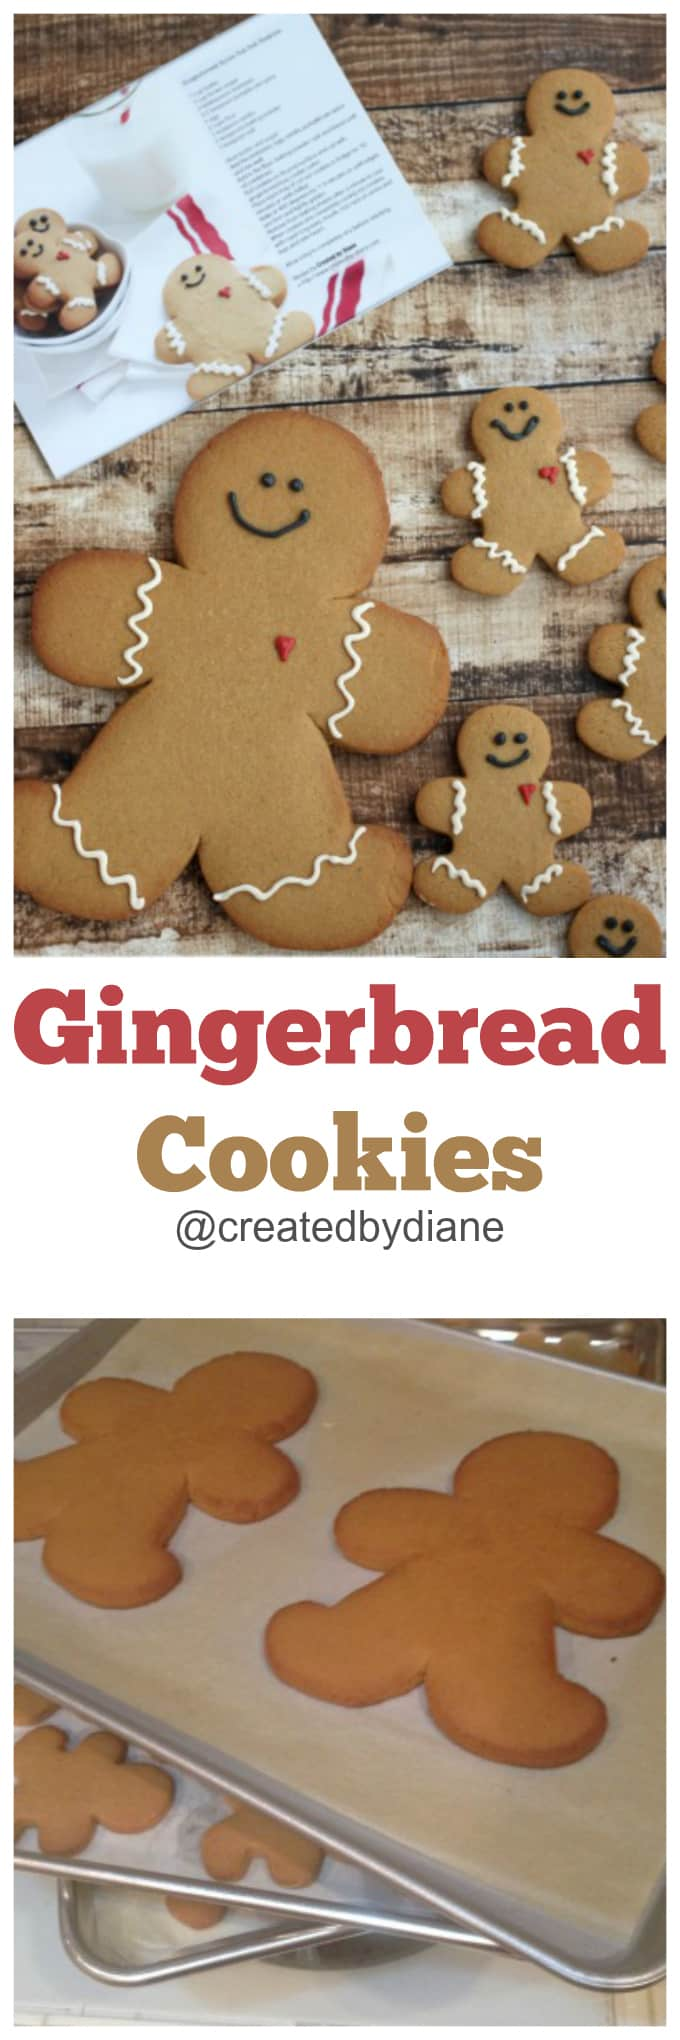 gingerbread cookies from @createdbydiane